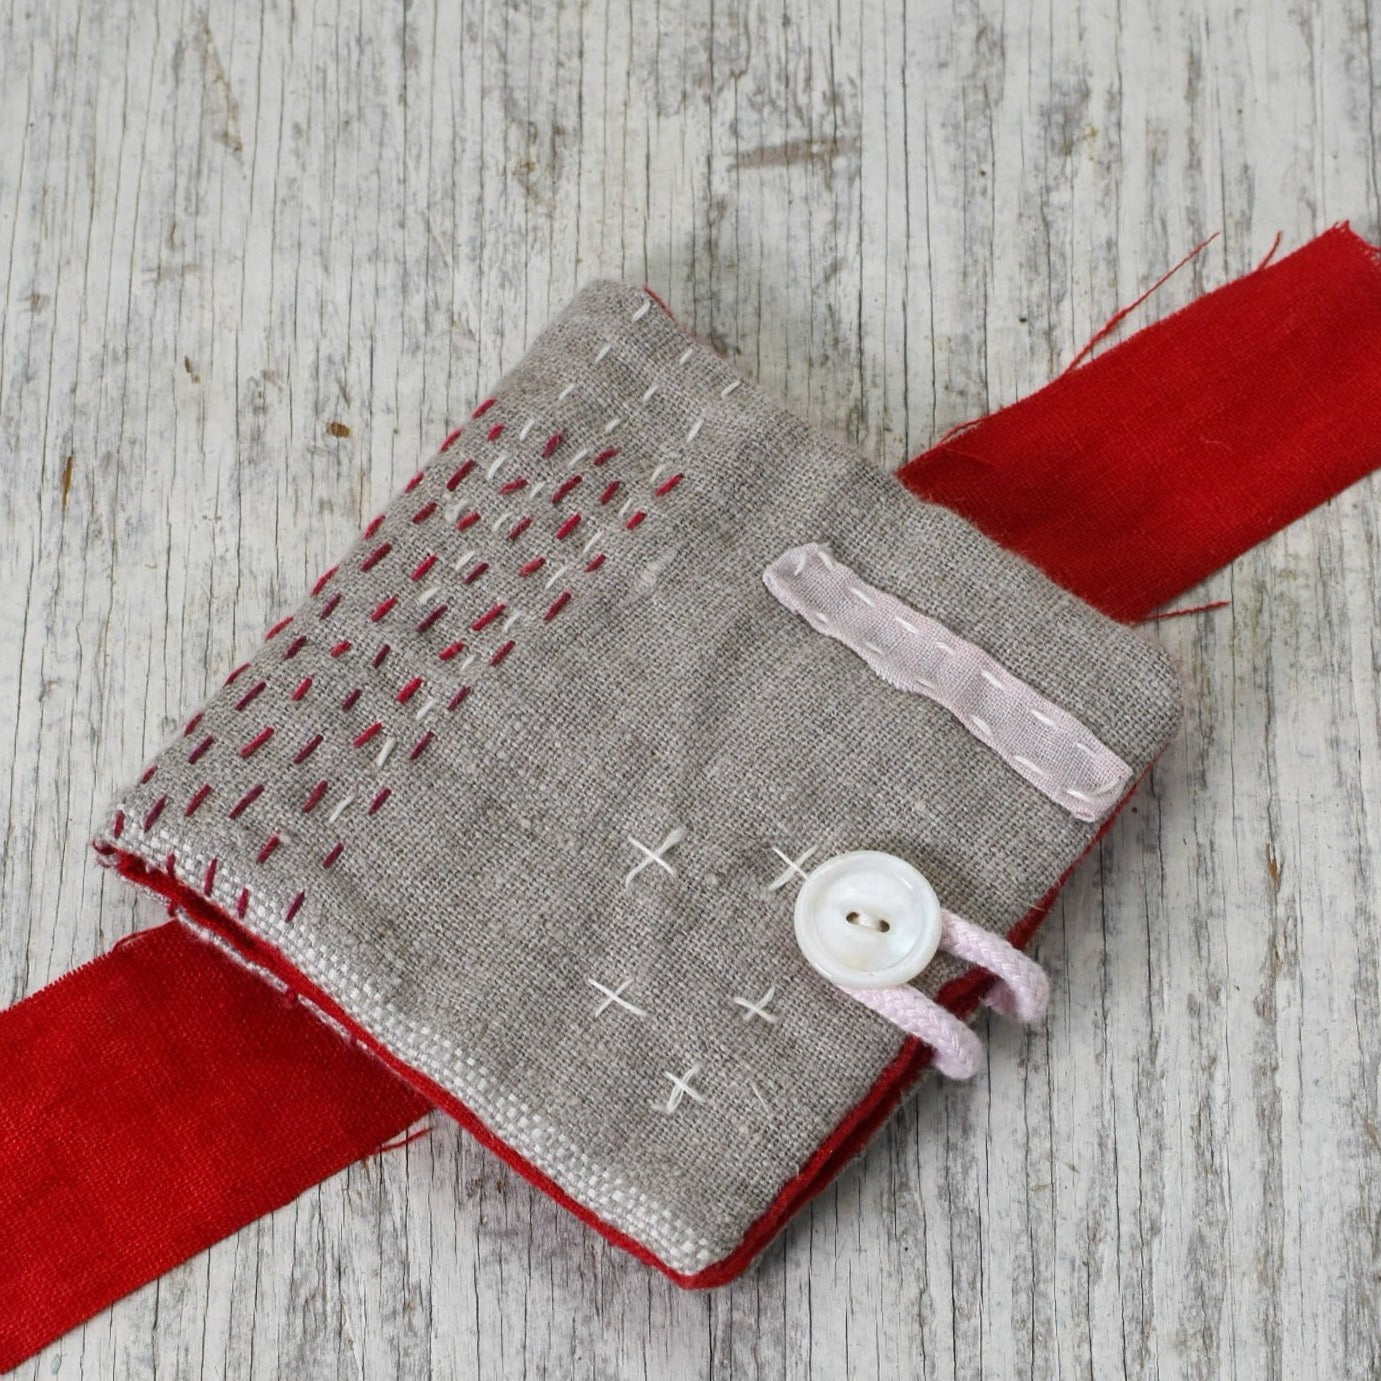 Hand-Sewn Needle Book Stitch Kit